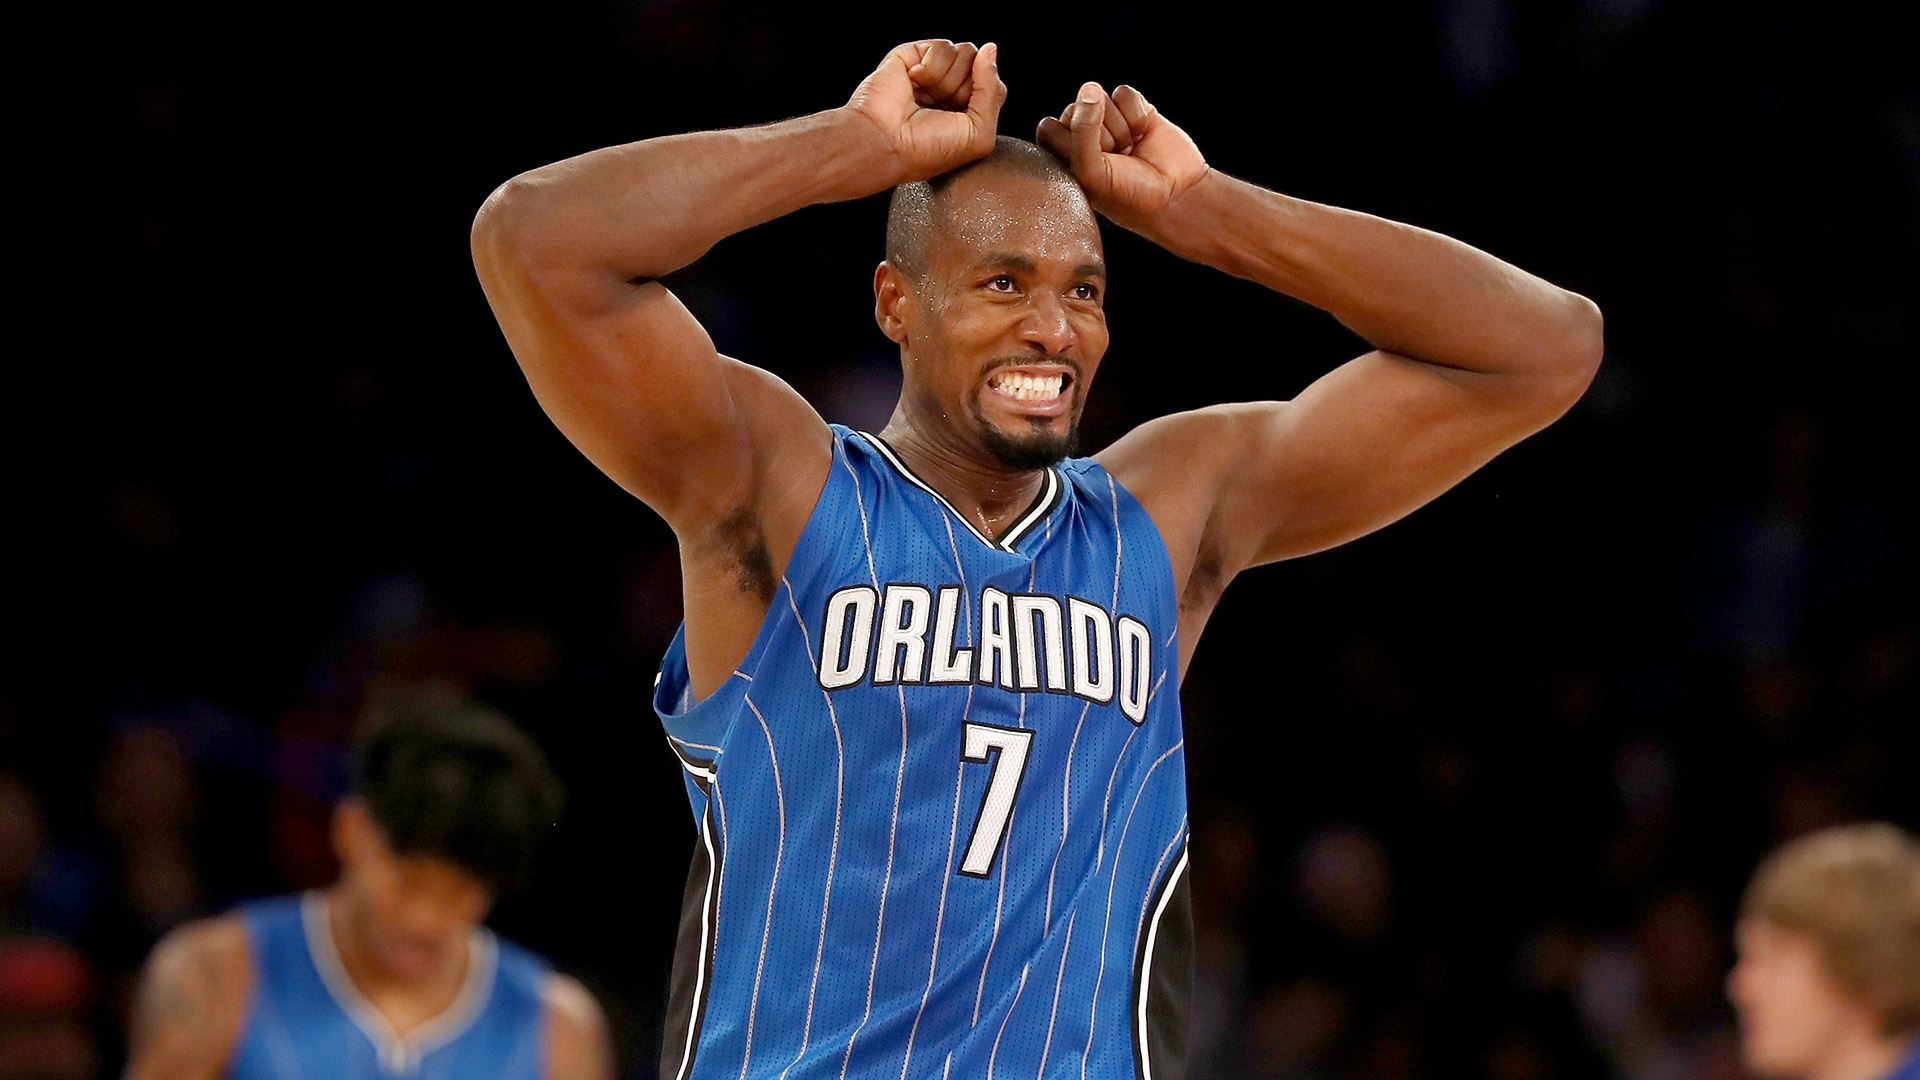 Toronto Raptors acquire Serge Ibaka in exchange for Terrence Ross